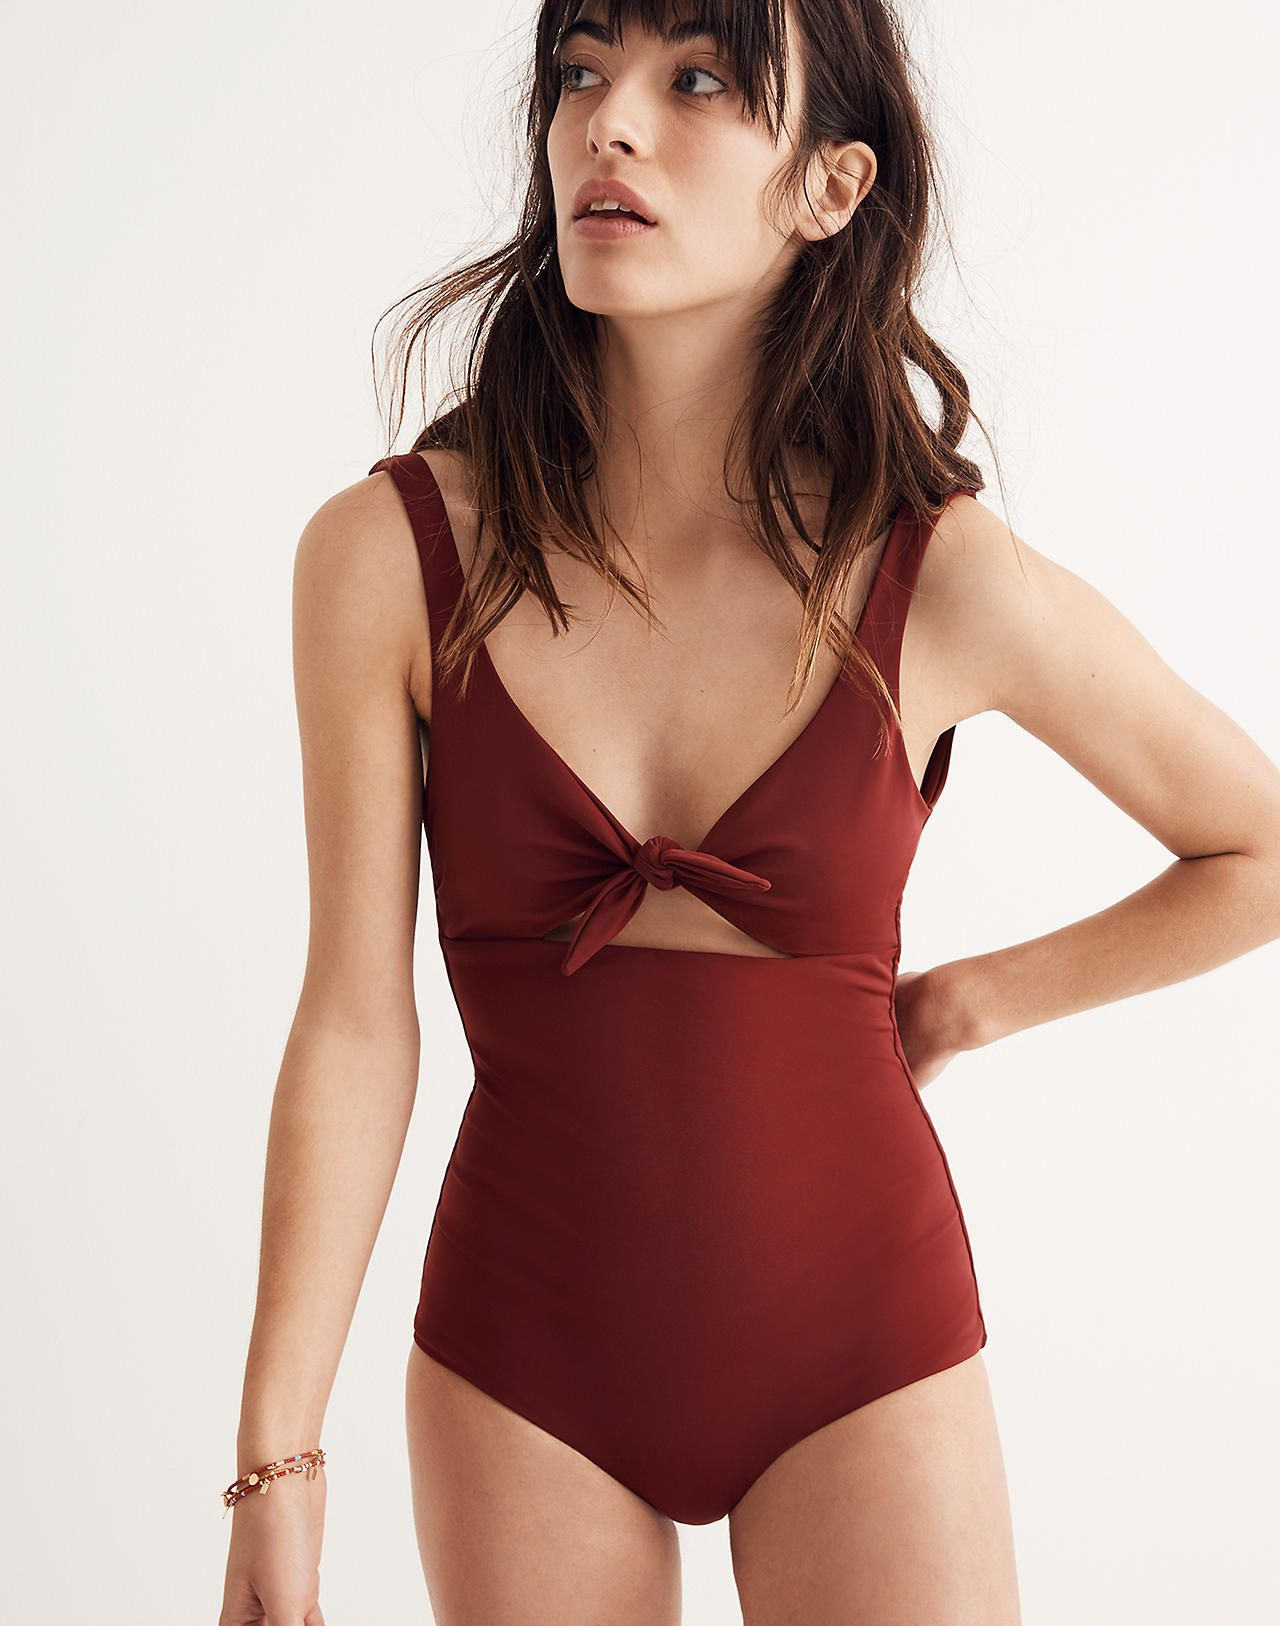 Madewell Womens Mara Hoffman Adeline One-Piece Swimsuit